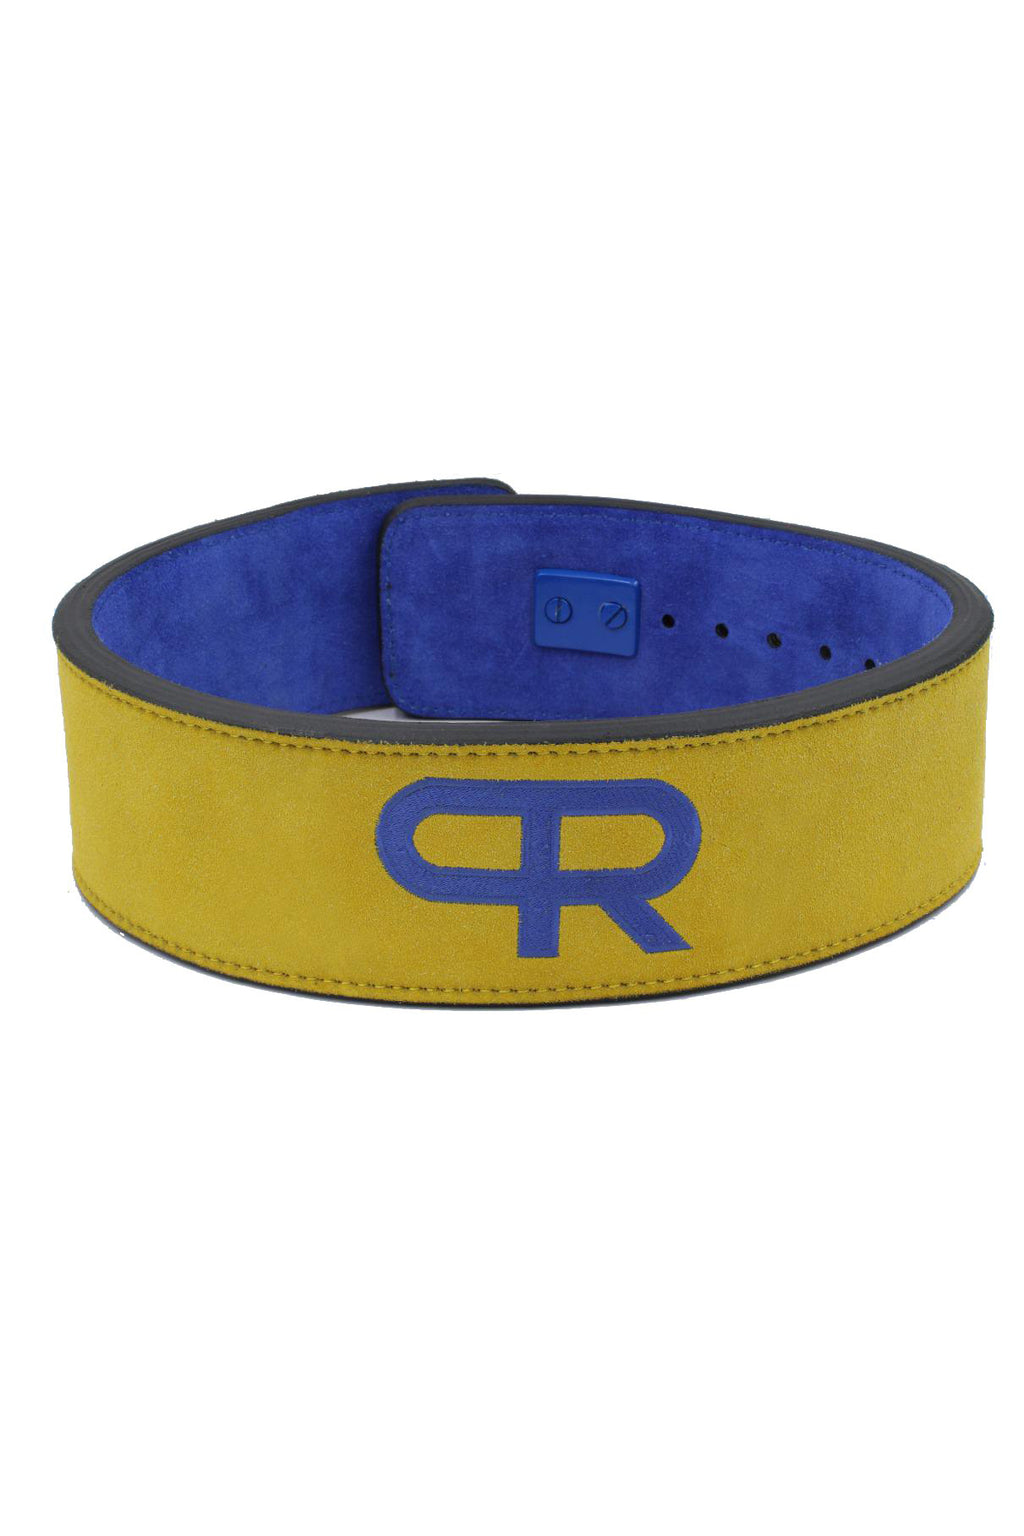 PR Powerlifting 13mm Belt w/ Lever Buckle - Blue/Yellow